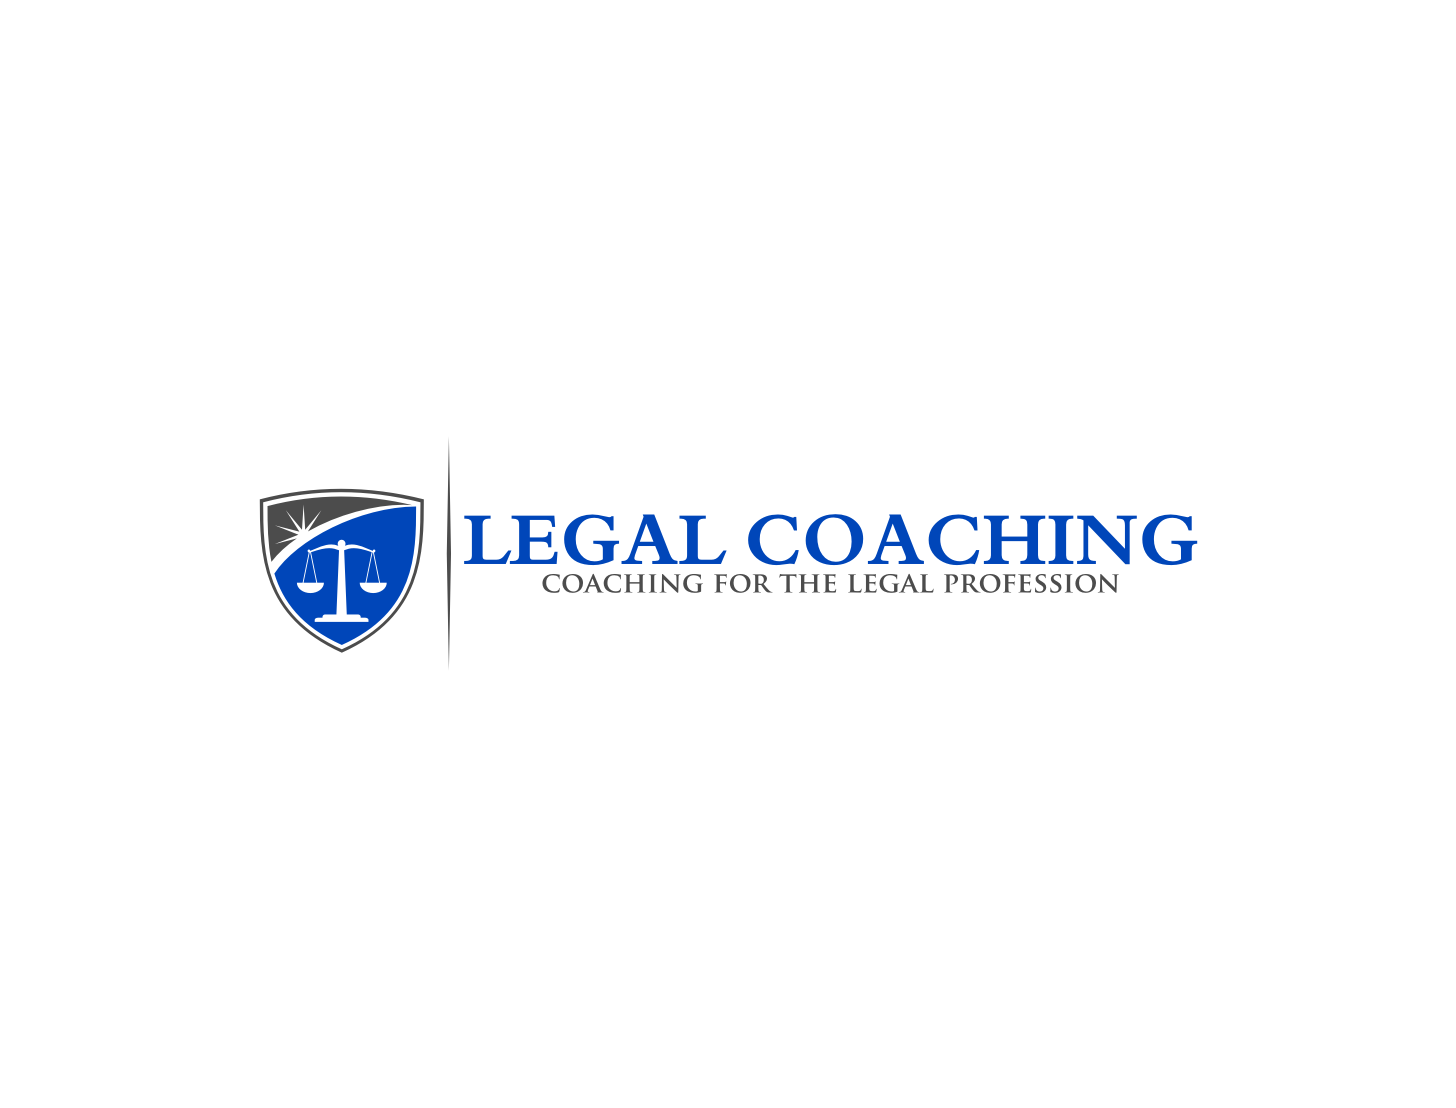 Logo Design by Tille Famz - Entry No. 55 in the Logo Design Contest New Logo Design for Legal Coaching.